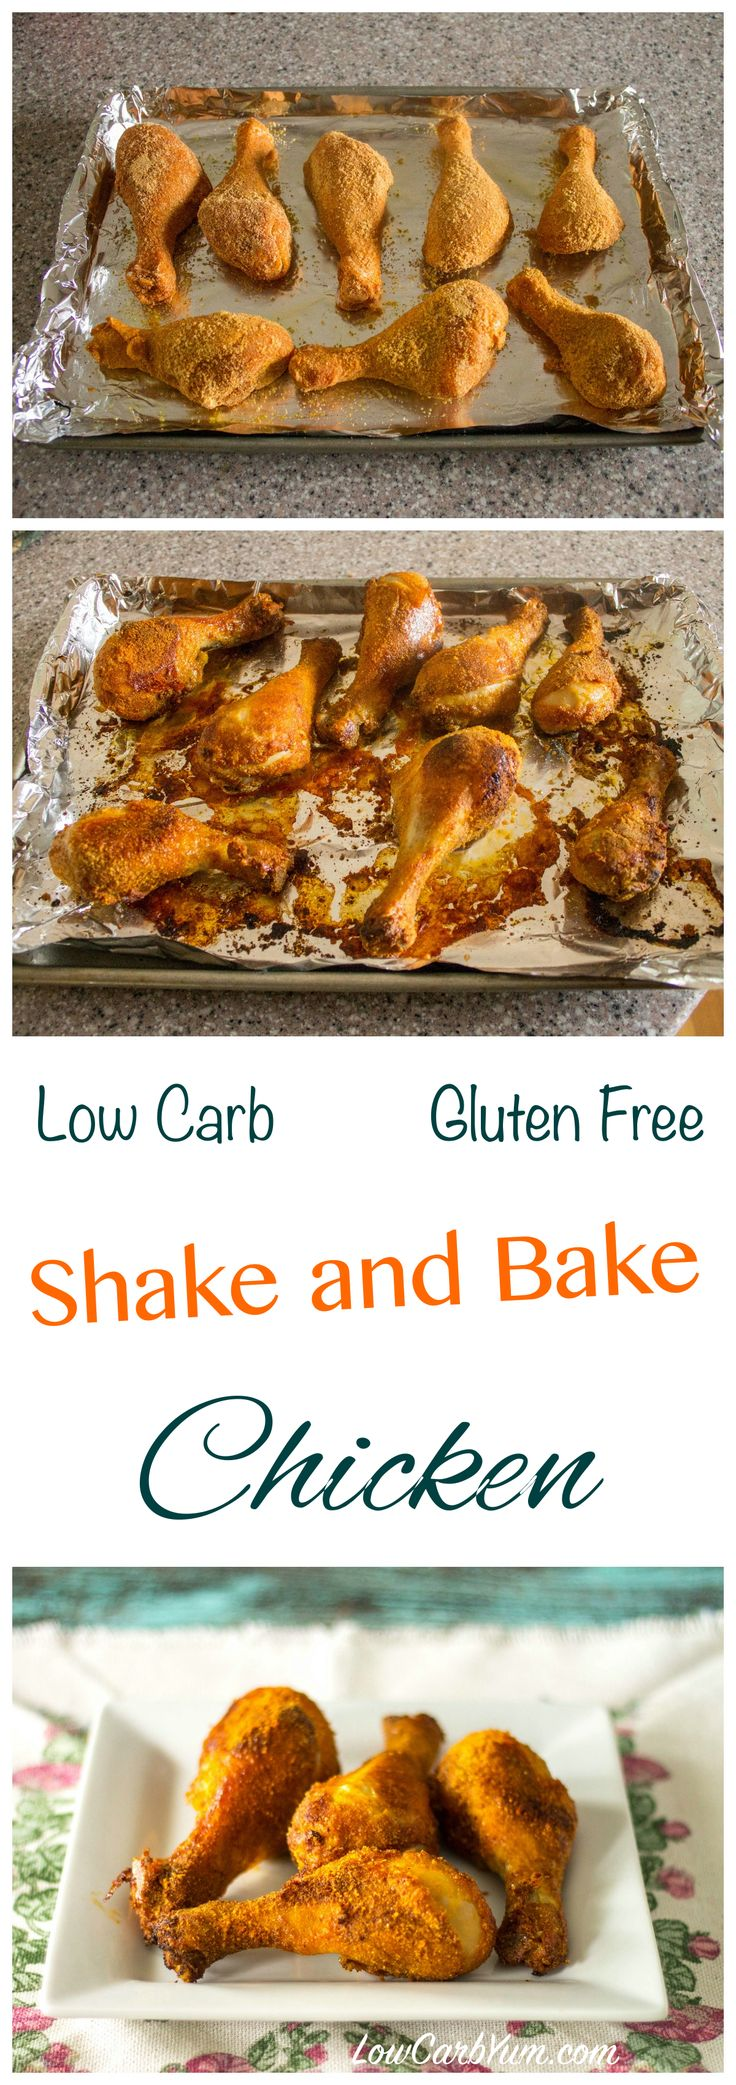 This simple oven fried shake and bake chicken recipe is gluten free and low carb. The preparation time is less than five minutes and clean up is a breeze.: